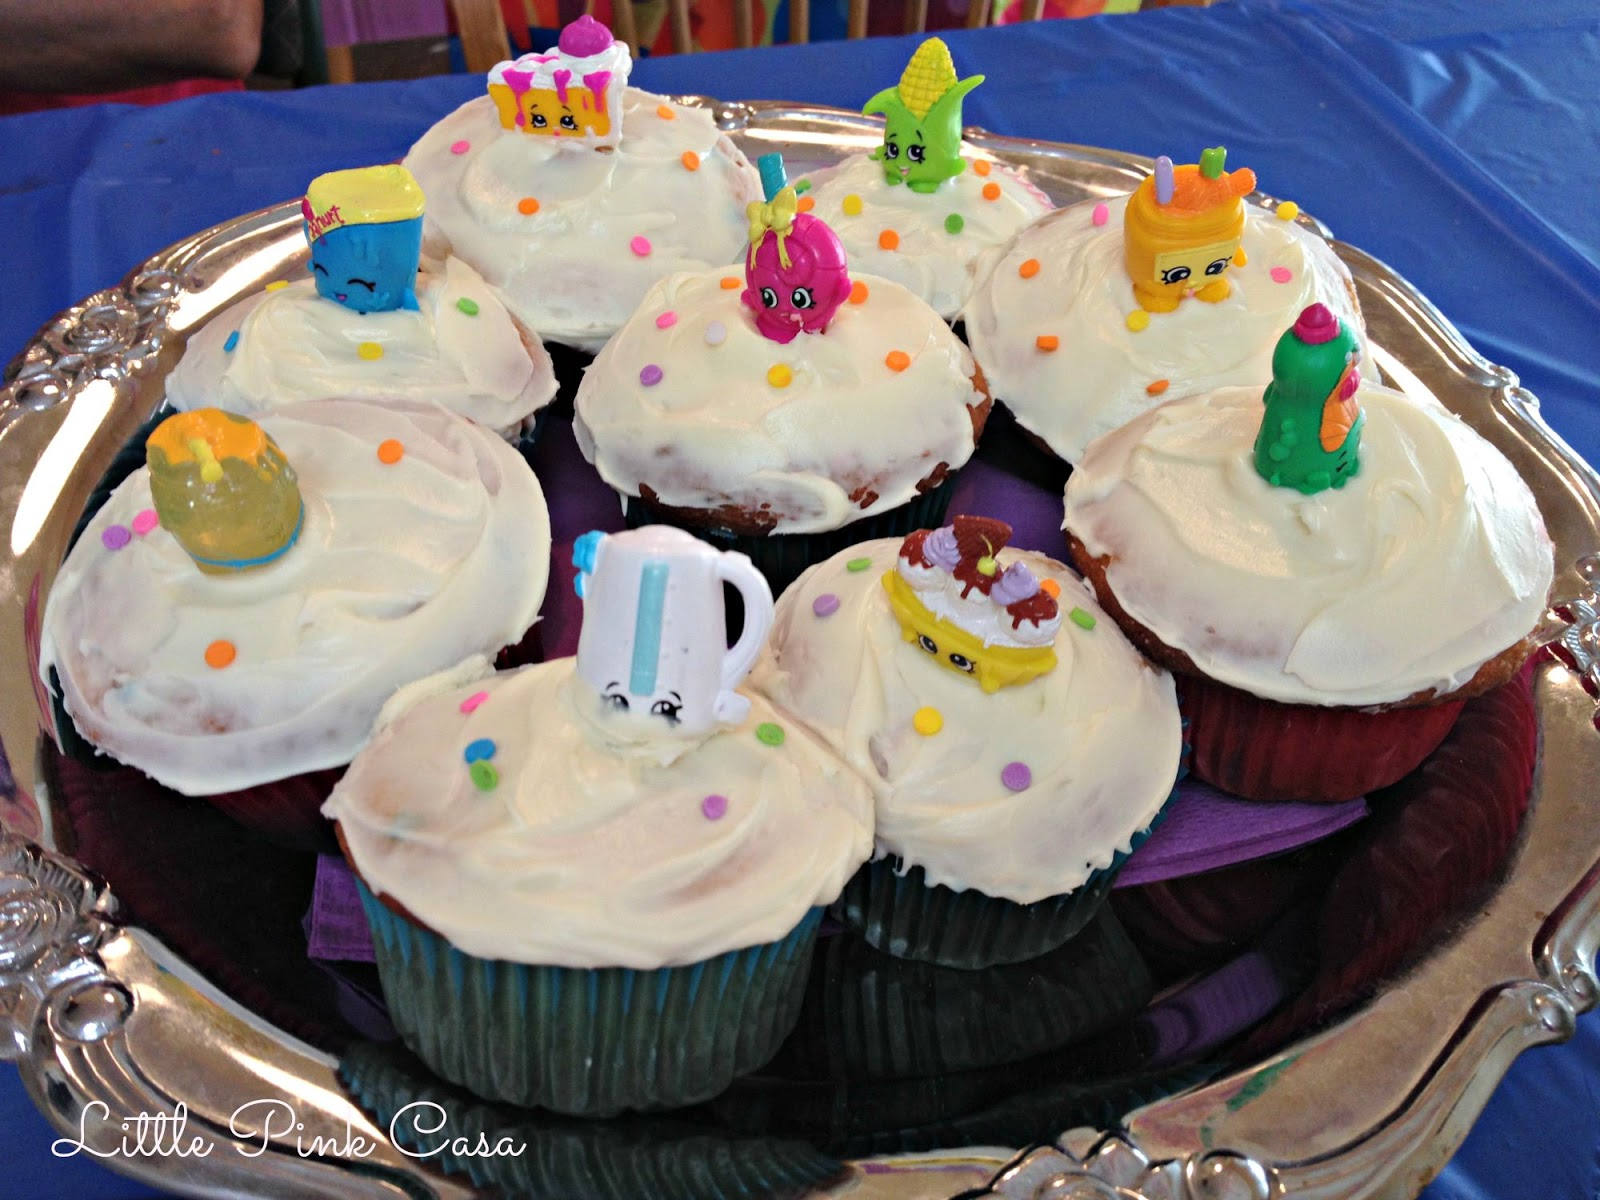 Little Pink Casa: Hadara's Shopkins Birthday Party On A